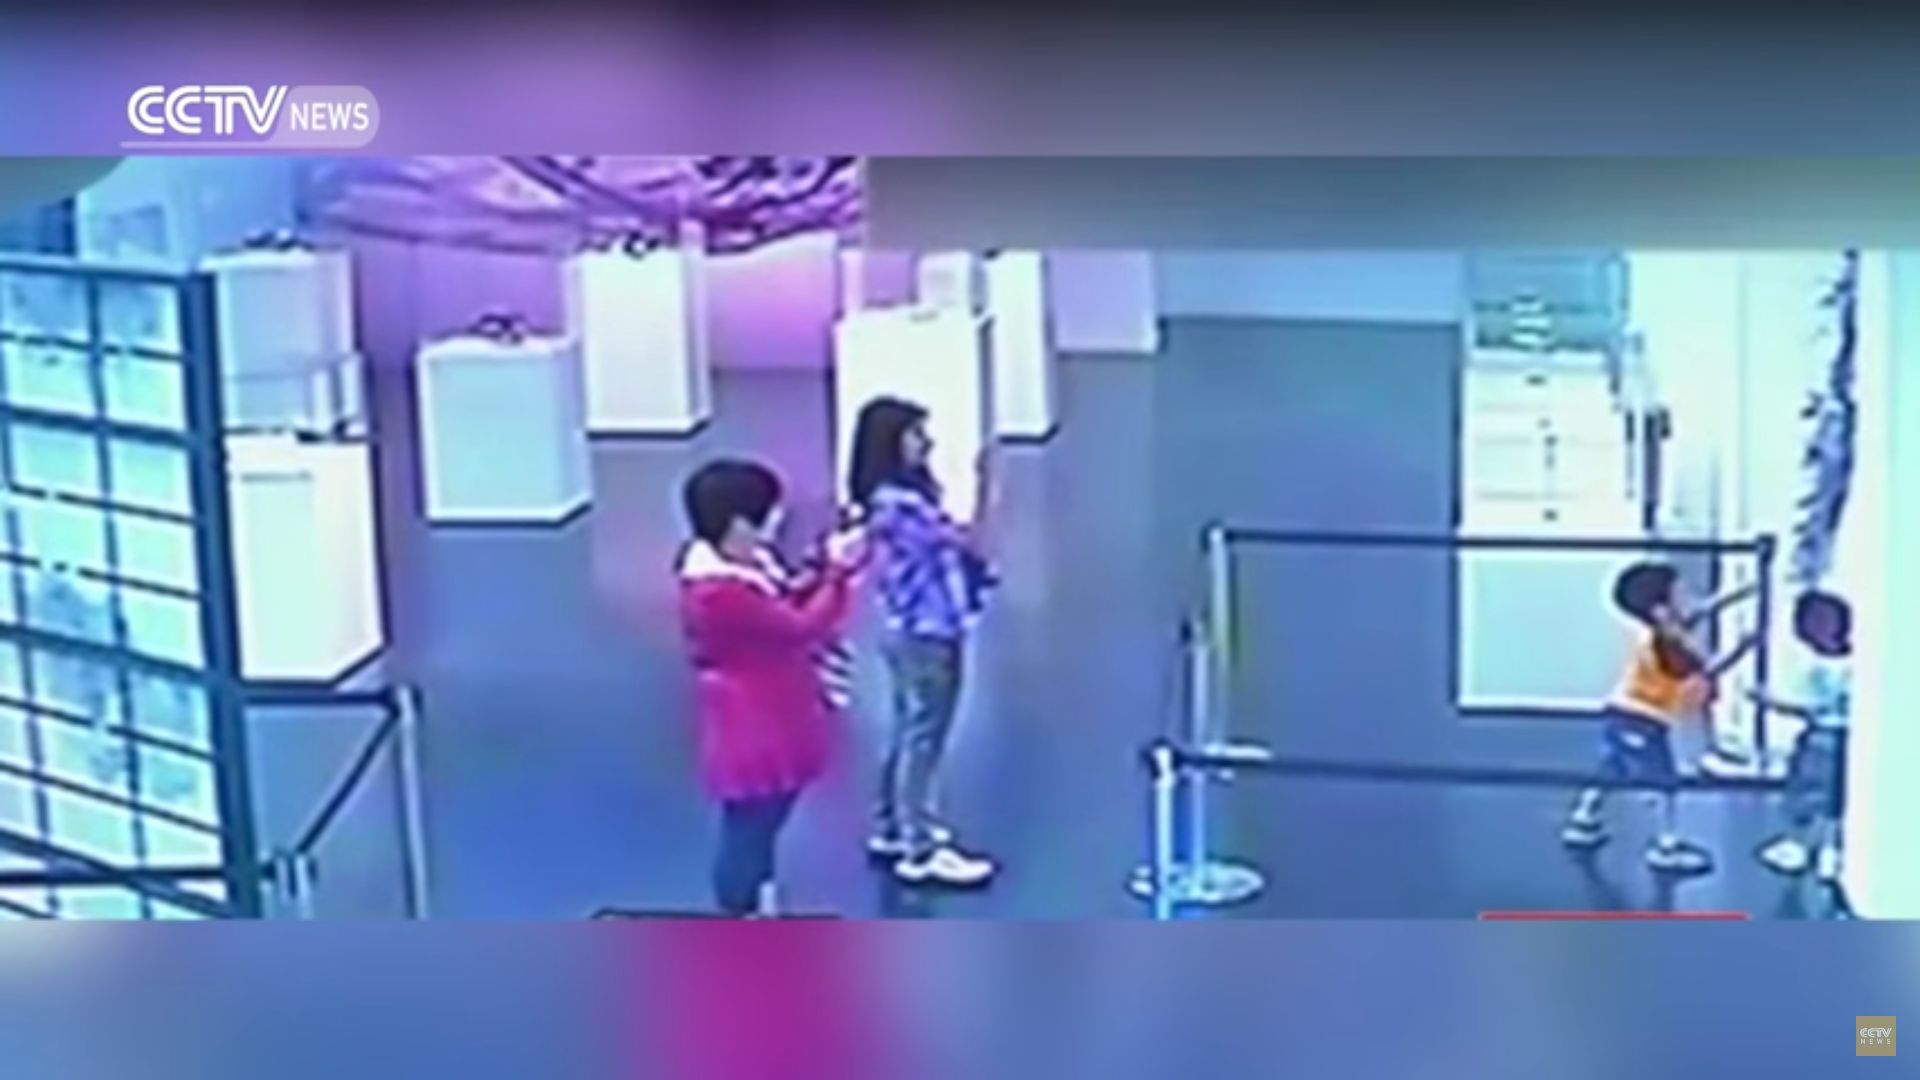 Surveillance video captured two children destroying artwork in a Chinese museum as two women filmed on their phones.